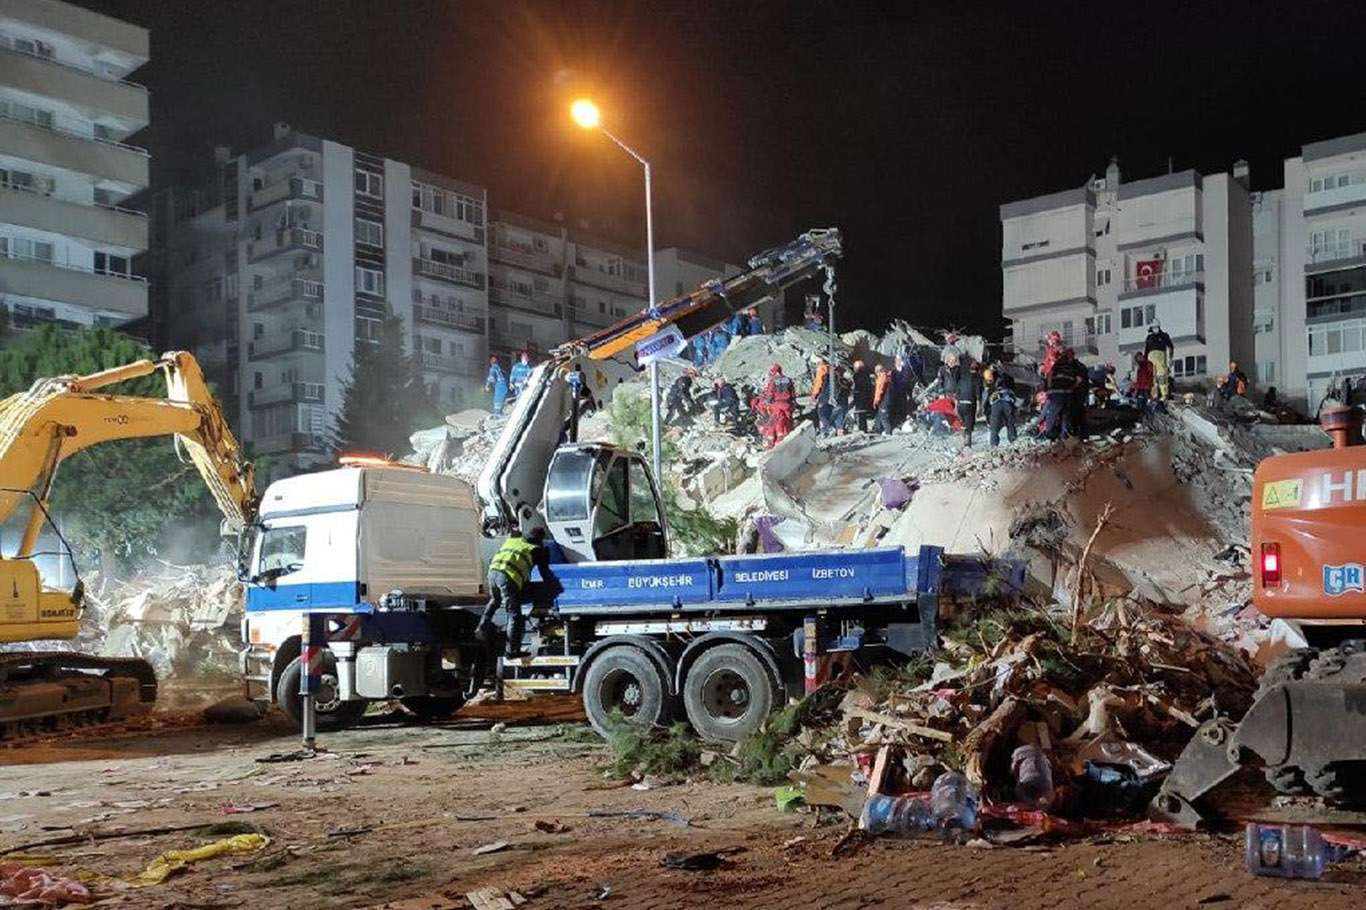 Turkey: Death toll from quake in İzmir rises to 51